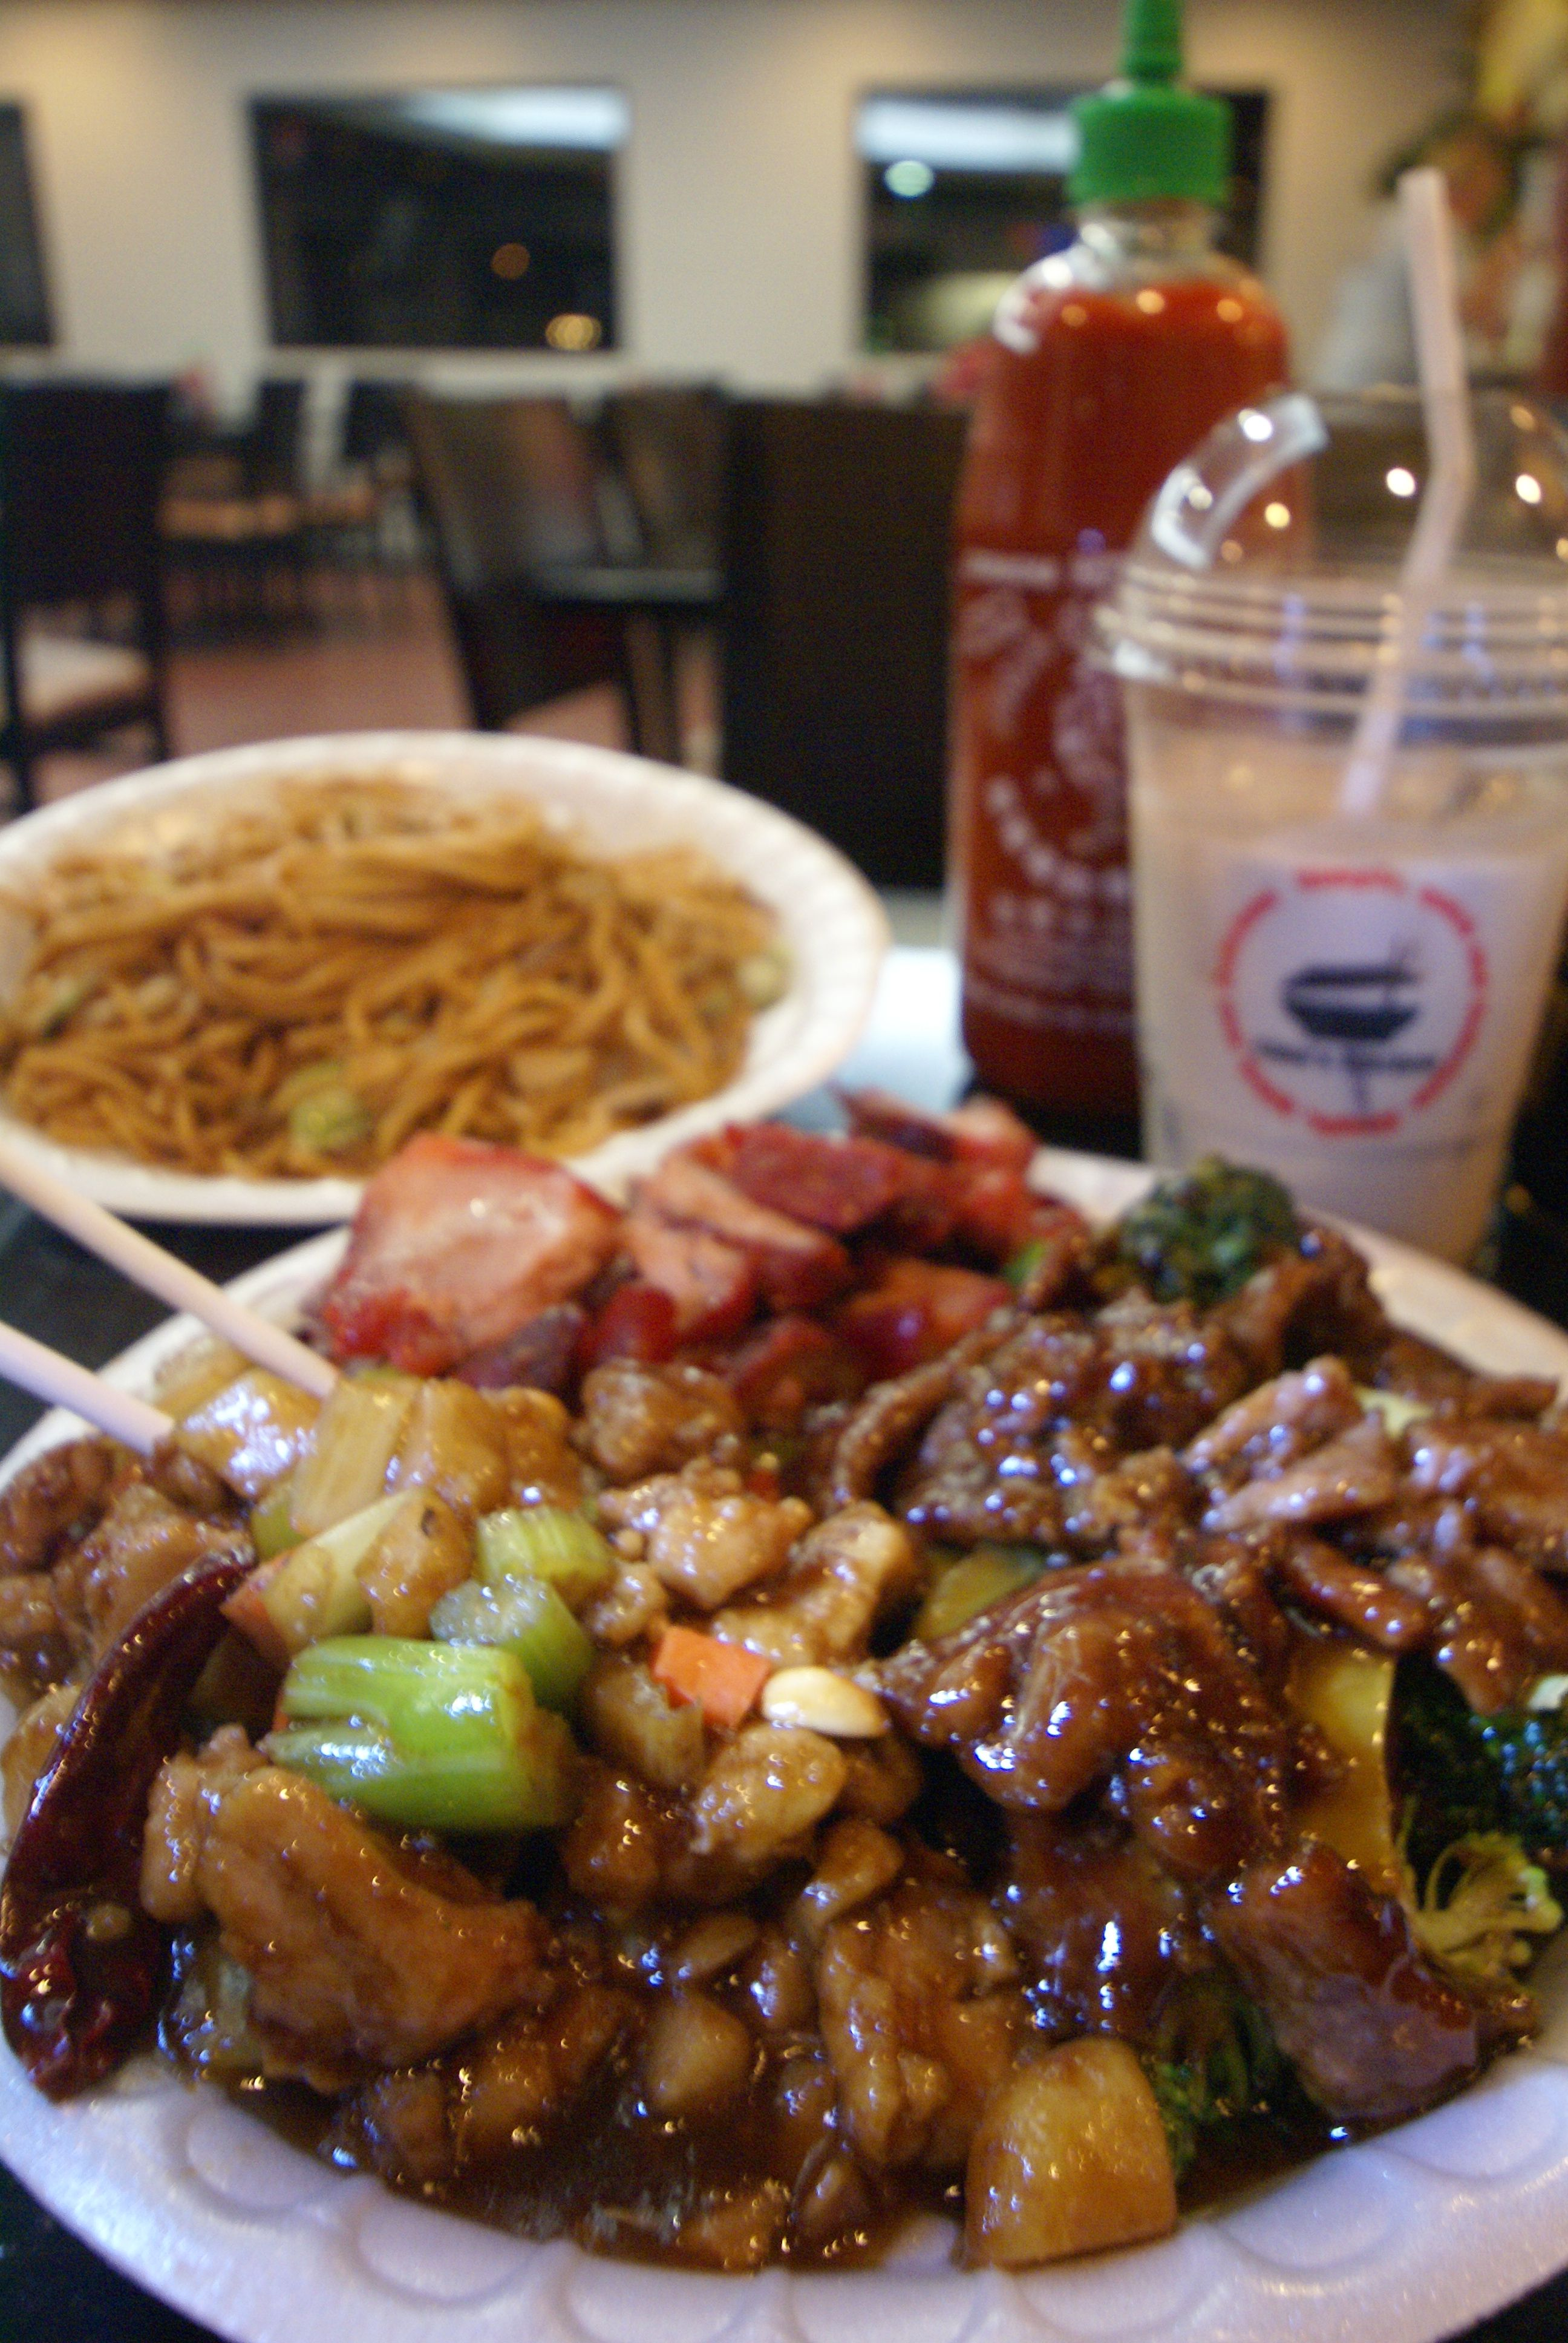 Chin S Chinese Kitchen Off Tustin Street In Orange Serves So